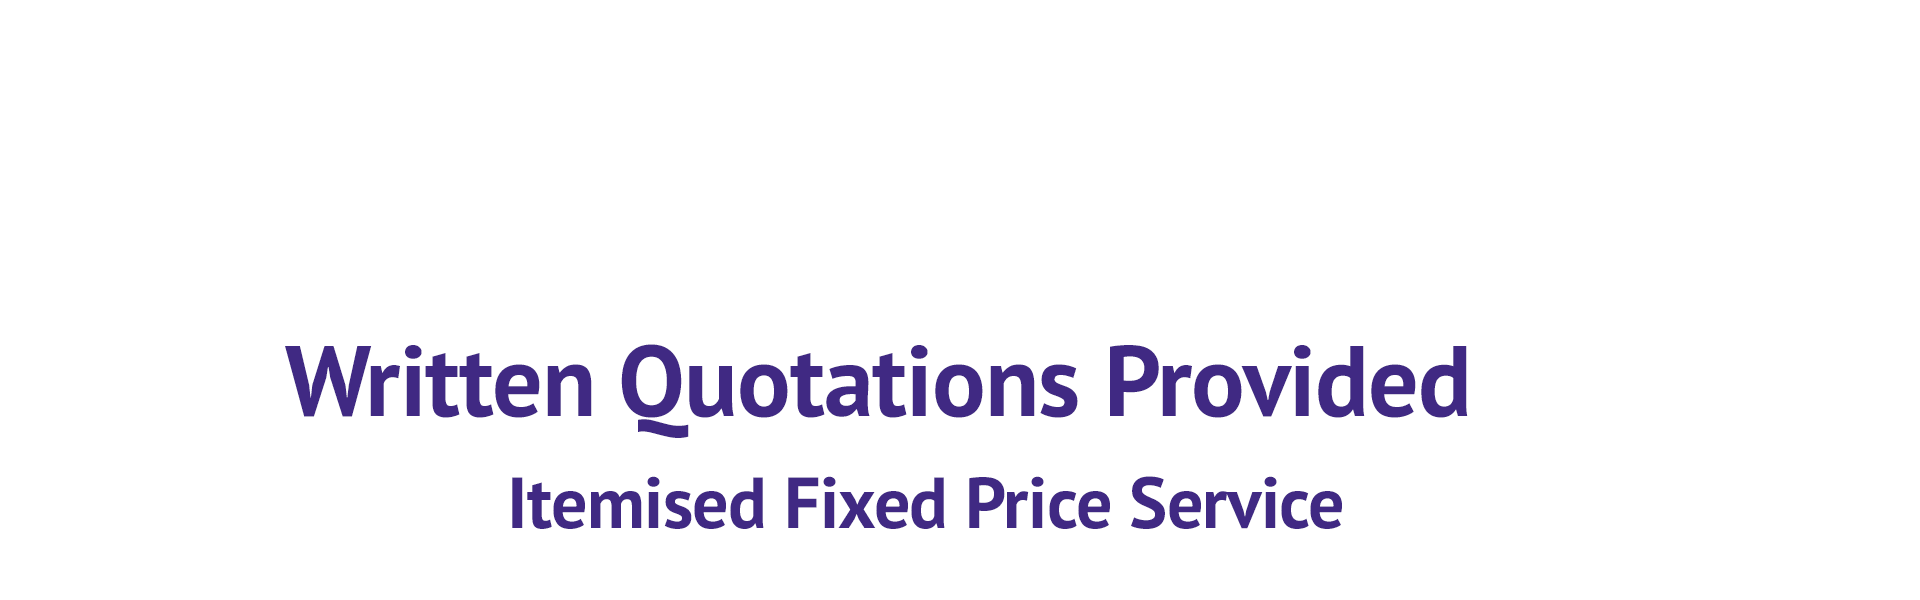 Written Quotations Provided Itemised Fixed Price Service